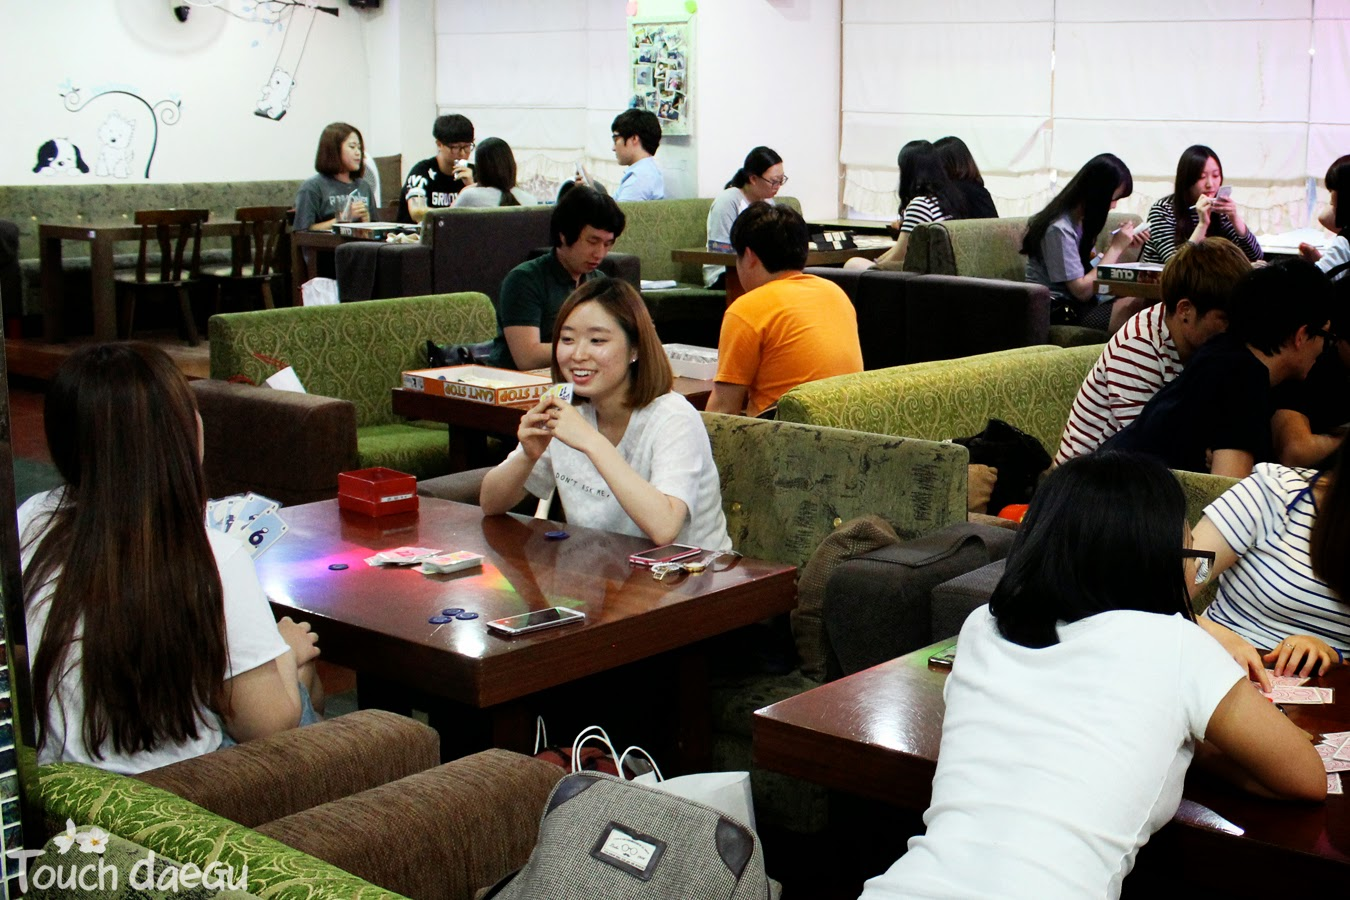 People are enjoying the card game in the cafe